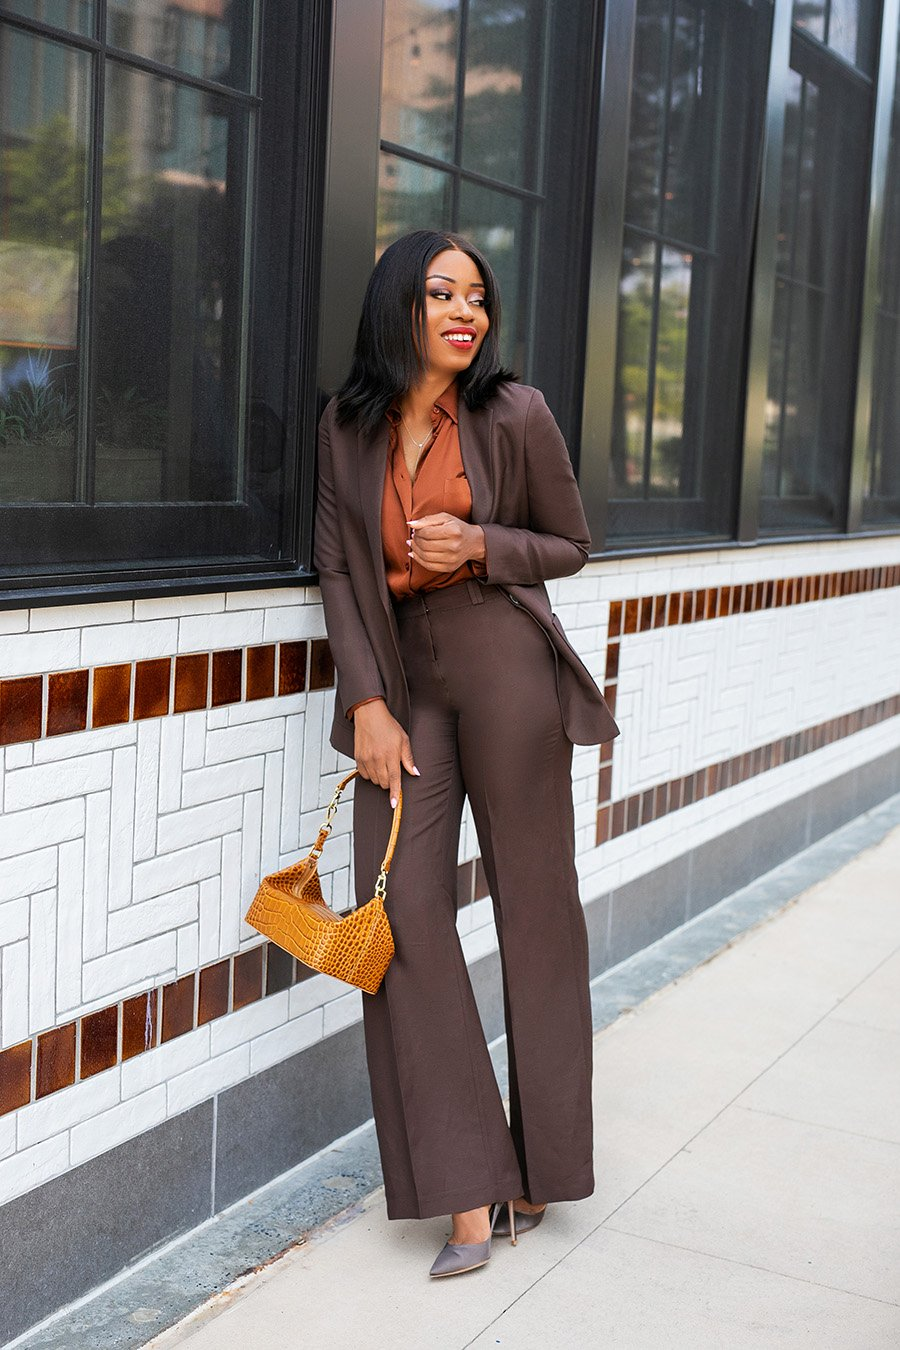 Stella-Adewunmi-shares-how-to-achieve-an-effortless-work-style